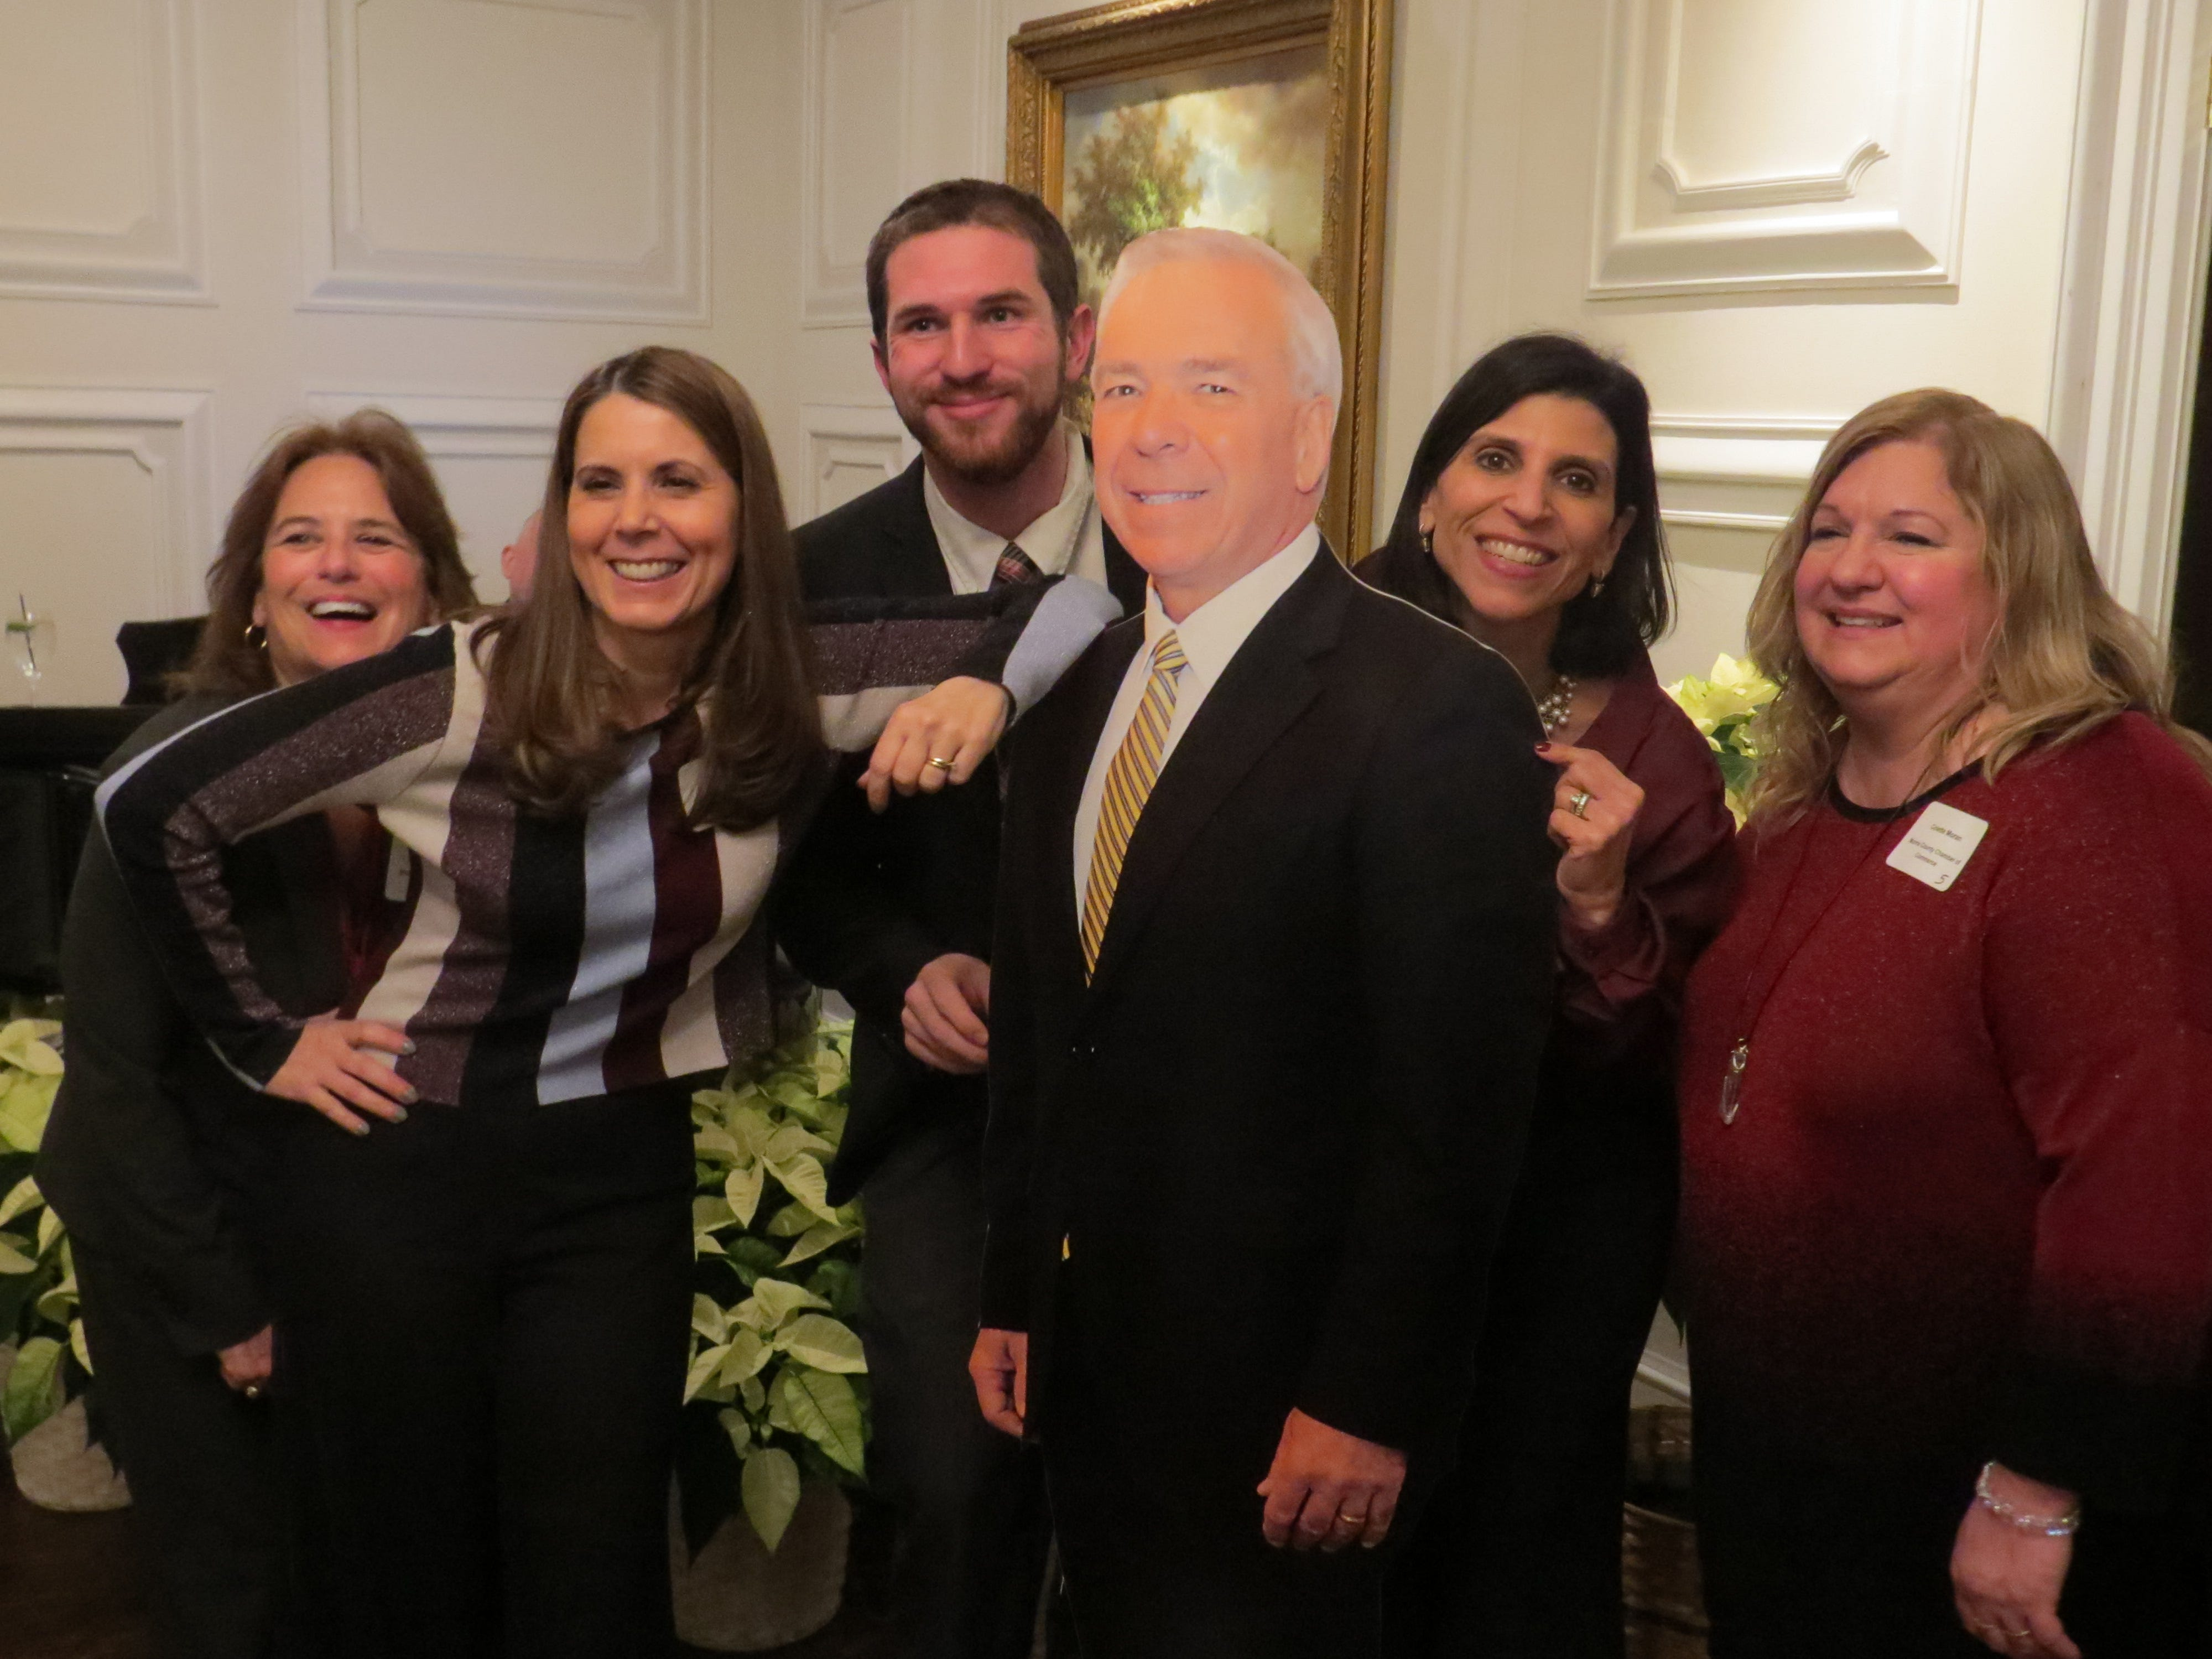 Morris County Chamber of Commerce staff members pose with a life-size cutout of chamber President Paul Boudreau, during a retirement reception for Boudreau at the Park Savoy in Florham Park. Dec. 5, 2018.